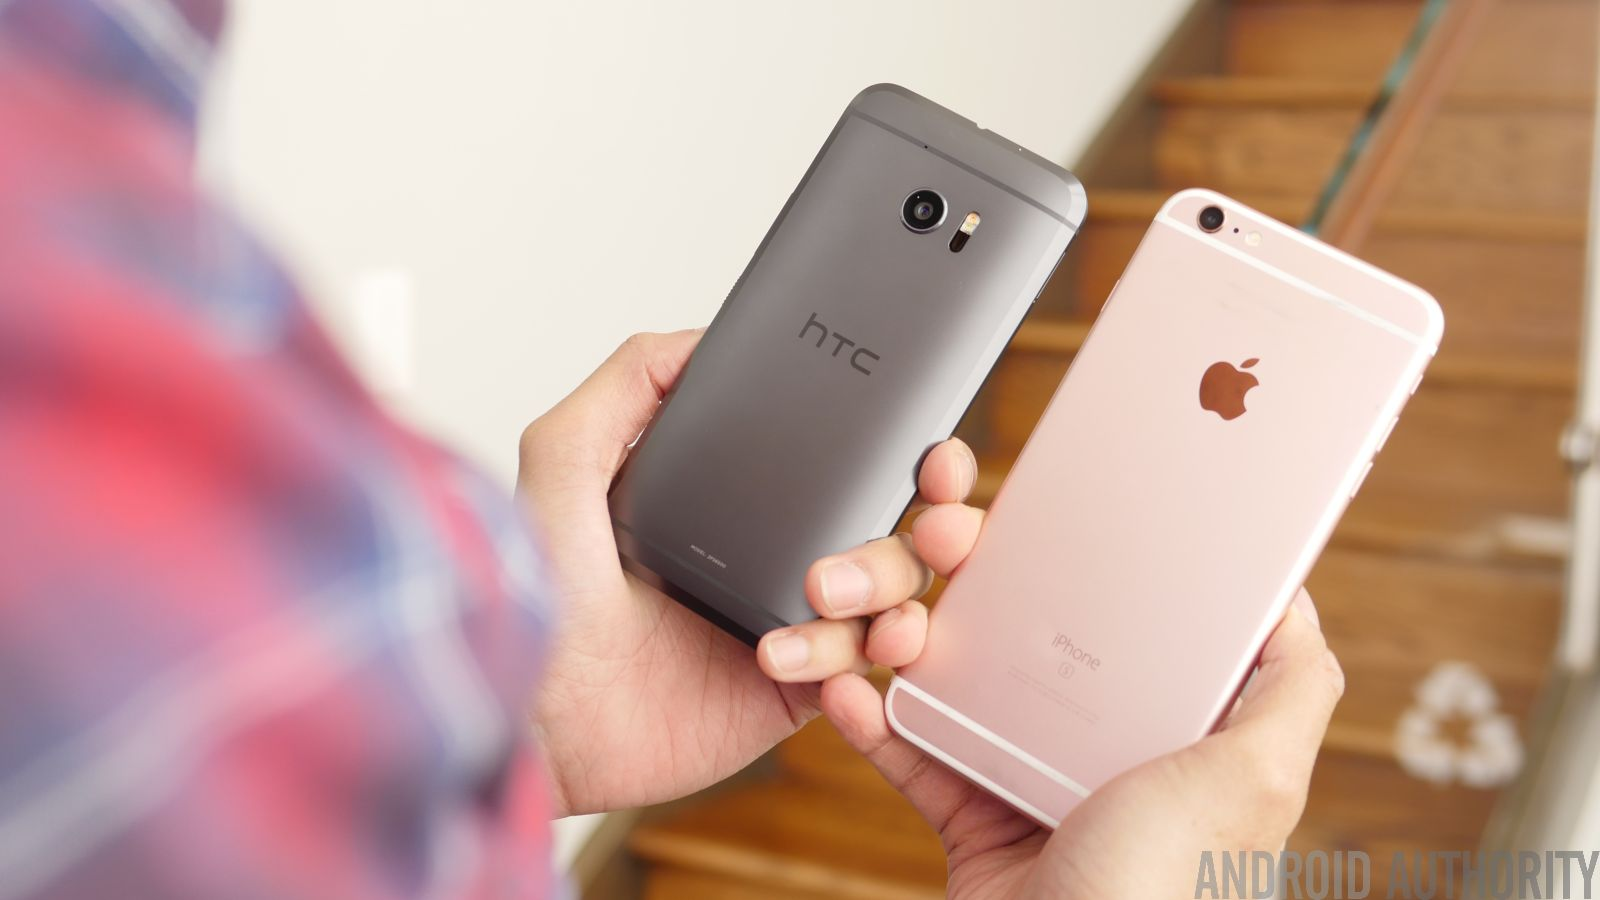 HTC 10 vs iPhone 6